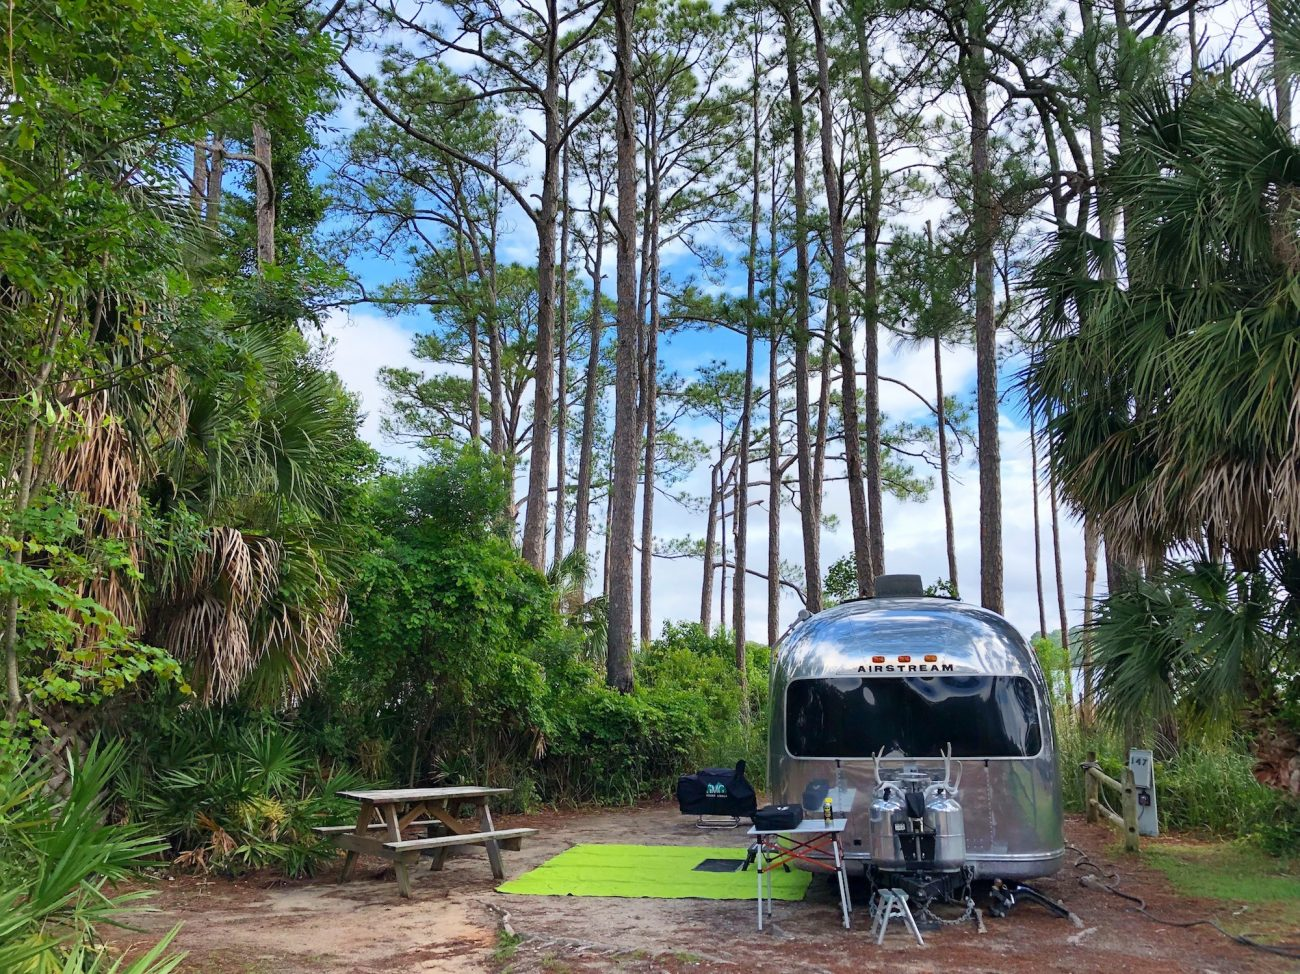 Airstream at St Andrews State Park